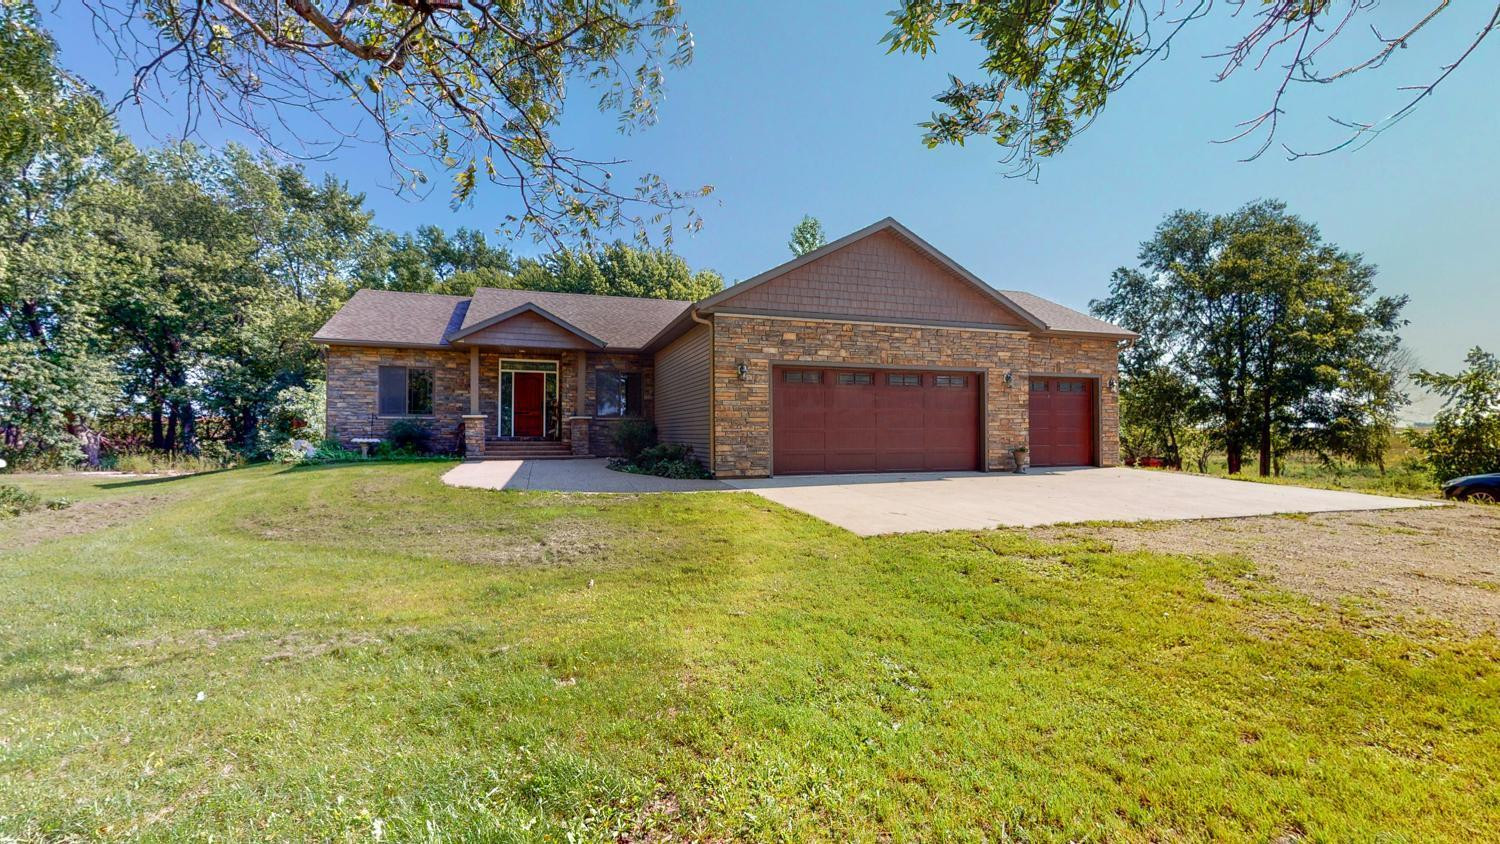 25094 600th Avenue, Brownsdale, MN 55918